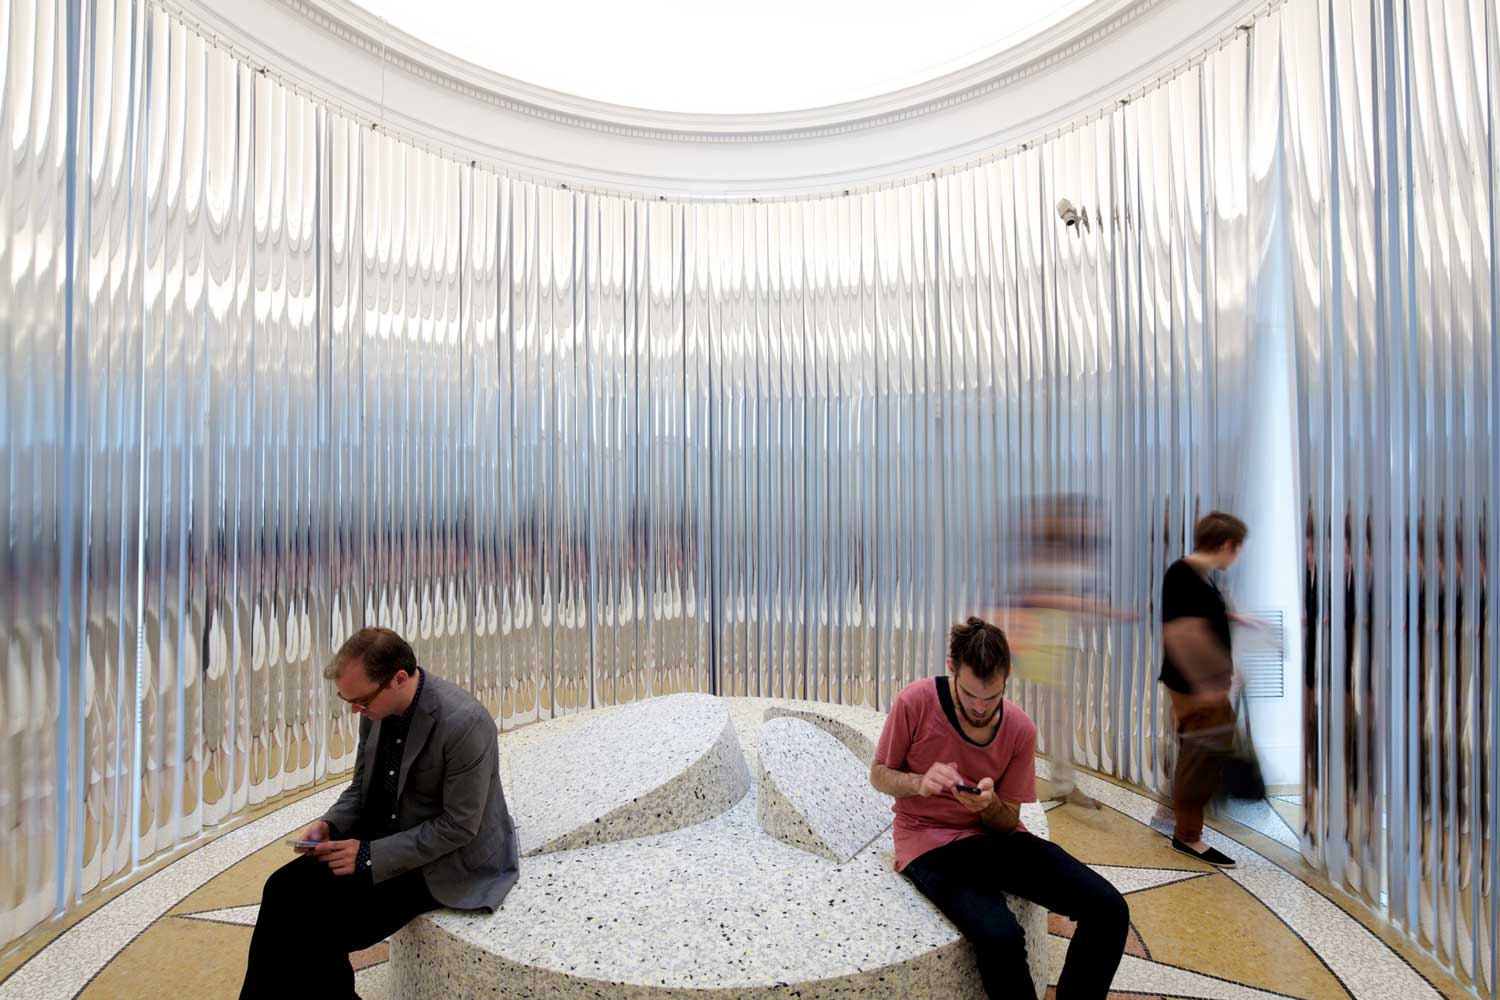 US Pavilion at the Venice Biennale 2014 Yellowtrace